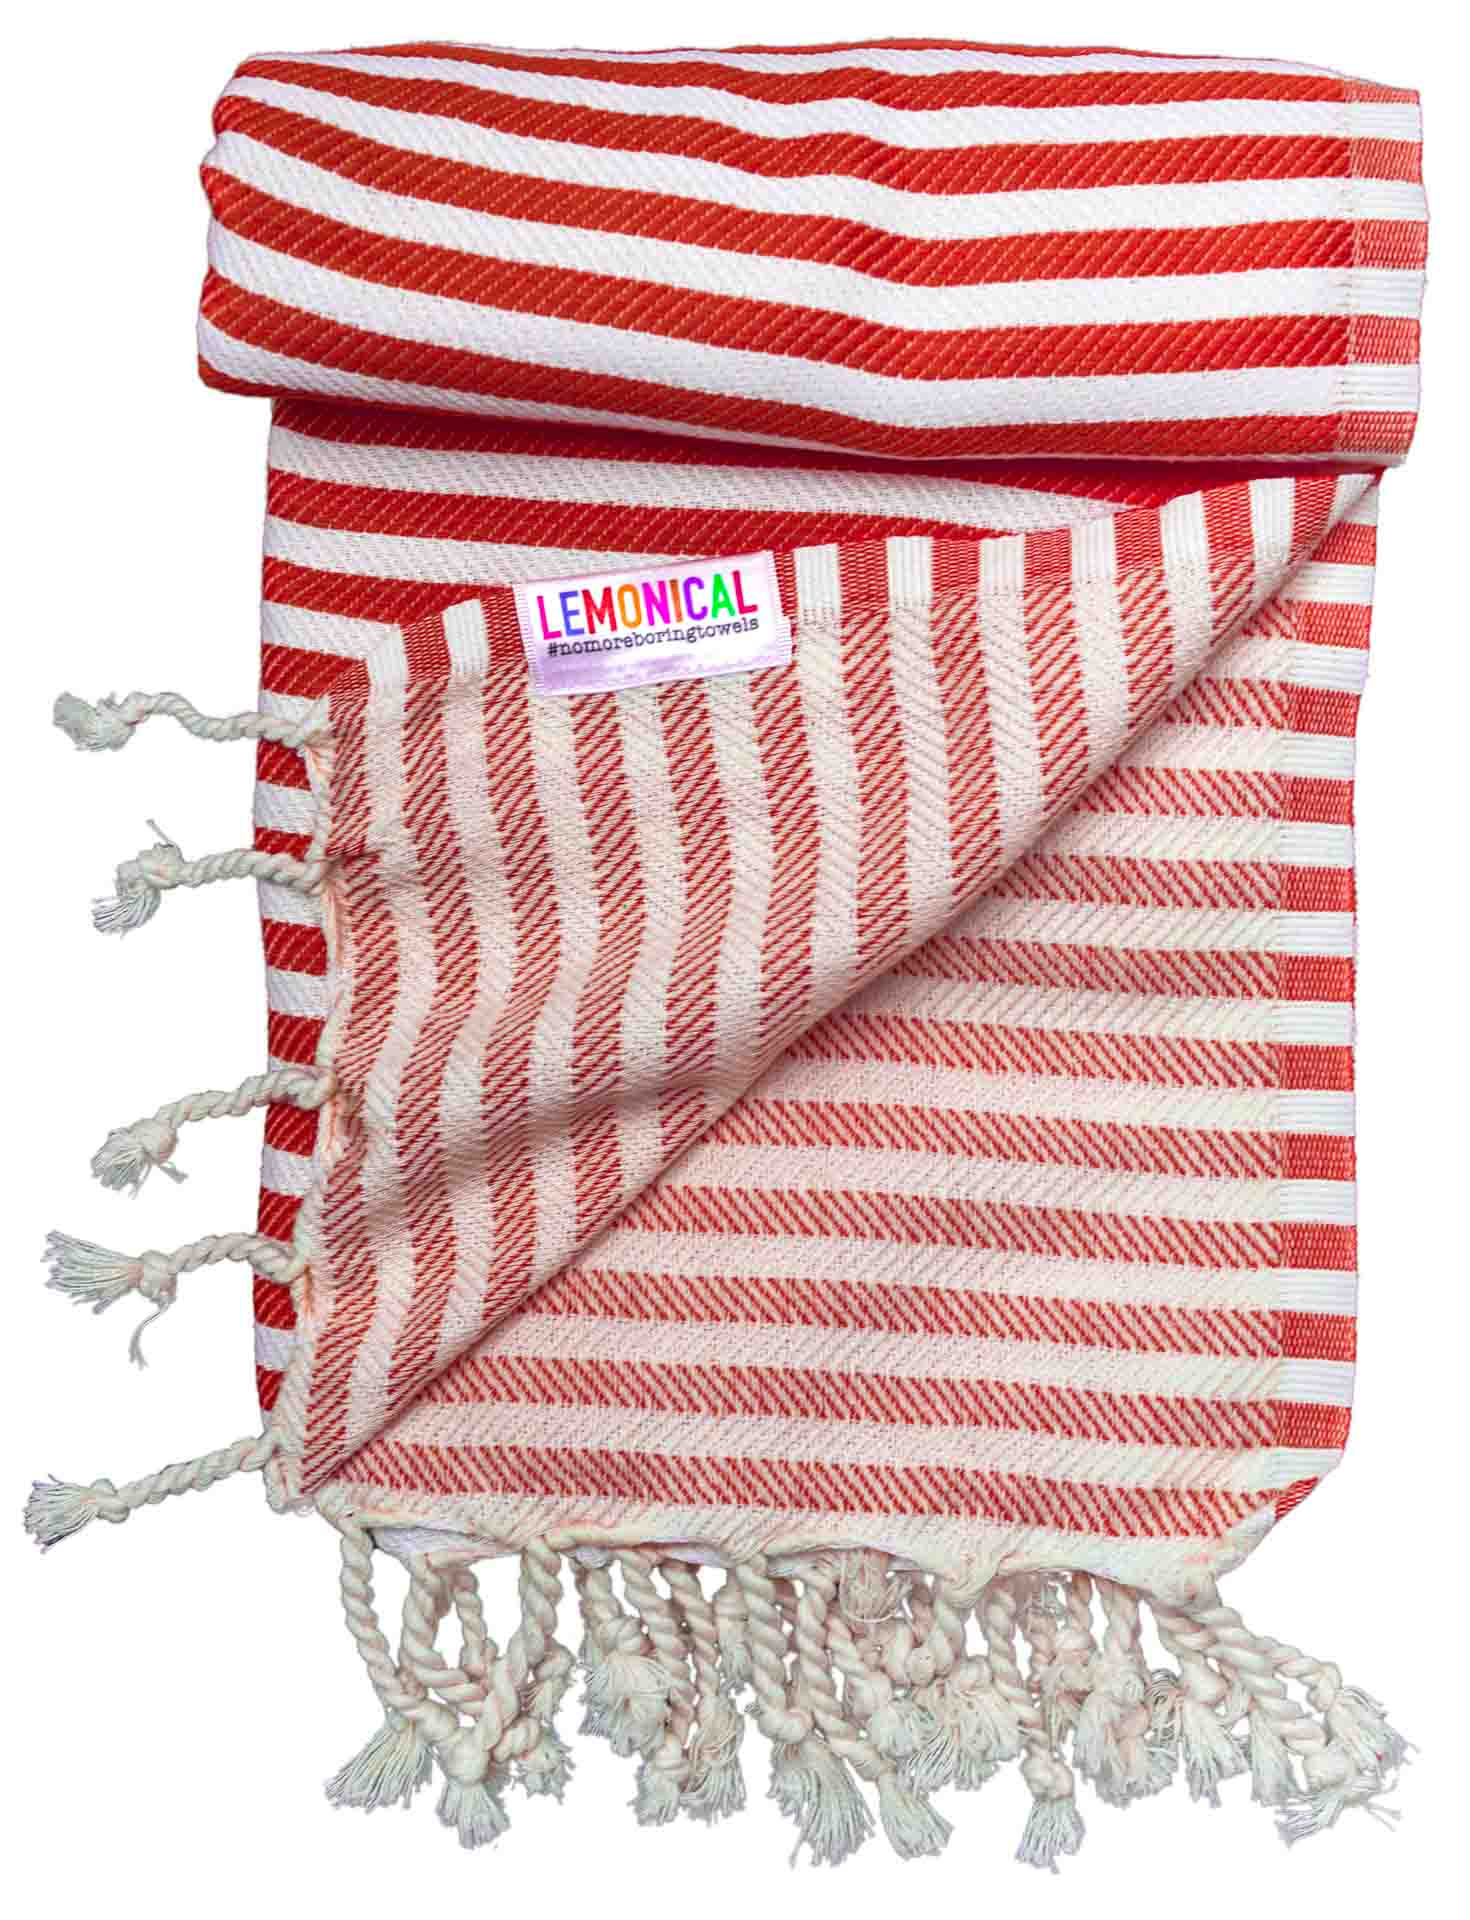 NAUTIC-RED-Towel-Lemonical-3